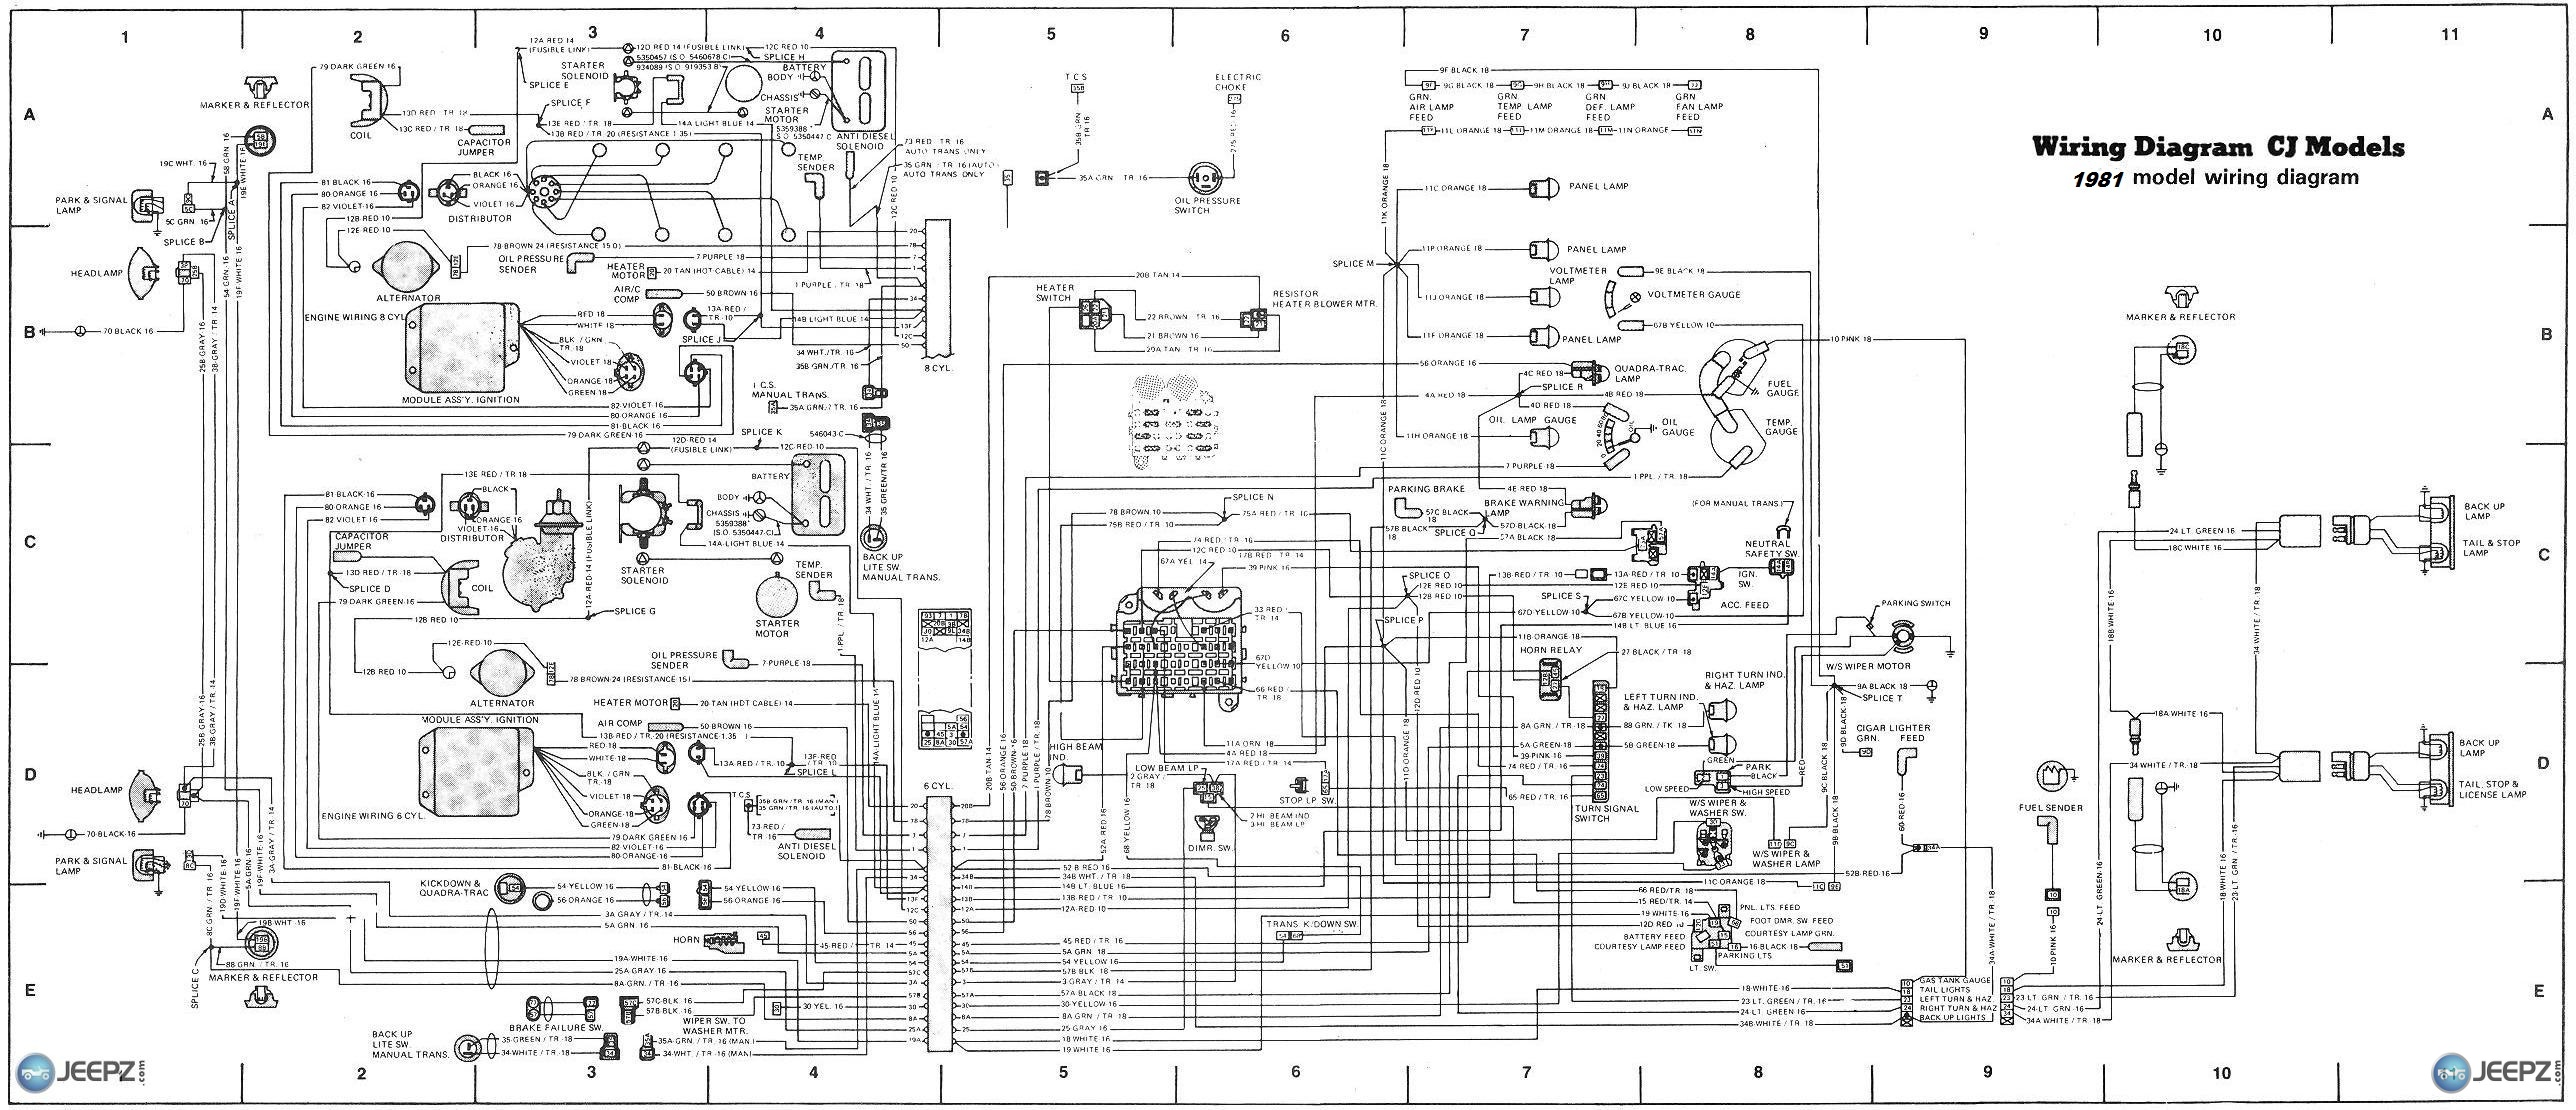 1979 Cj7 Wiring Diagram: Jeep Cj Wiring Diagram   DigitalWEB,